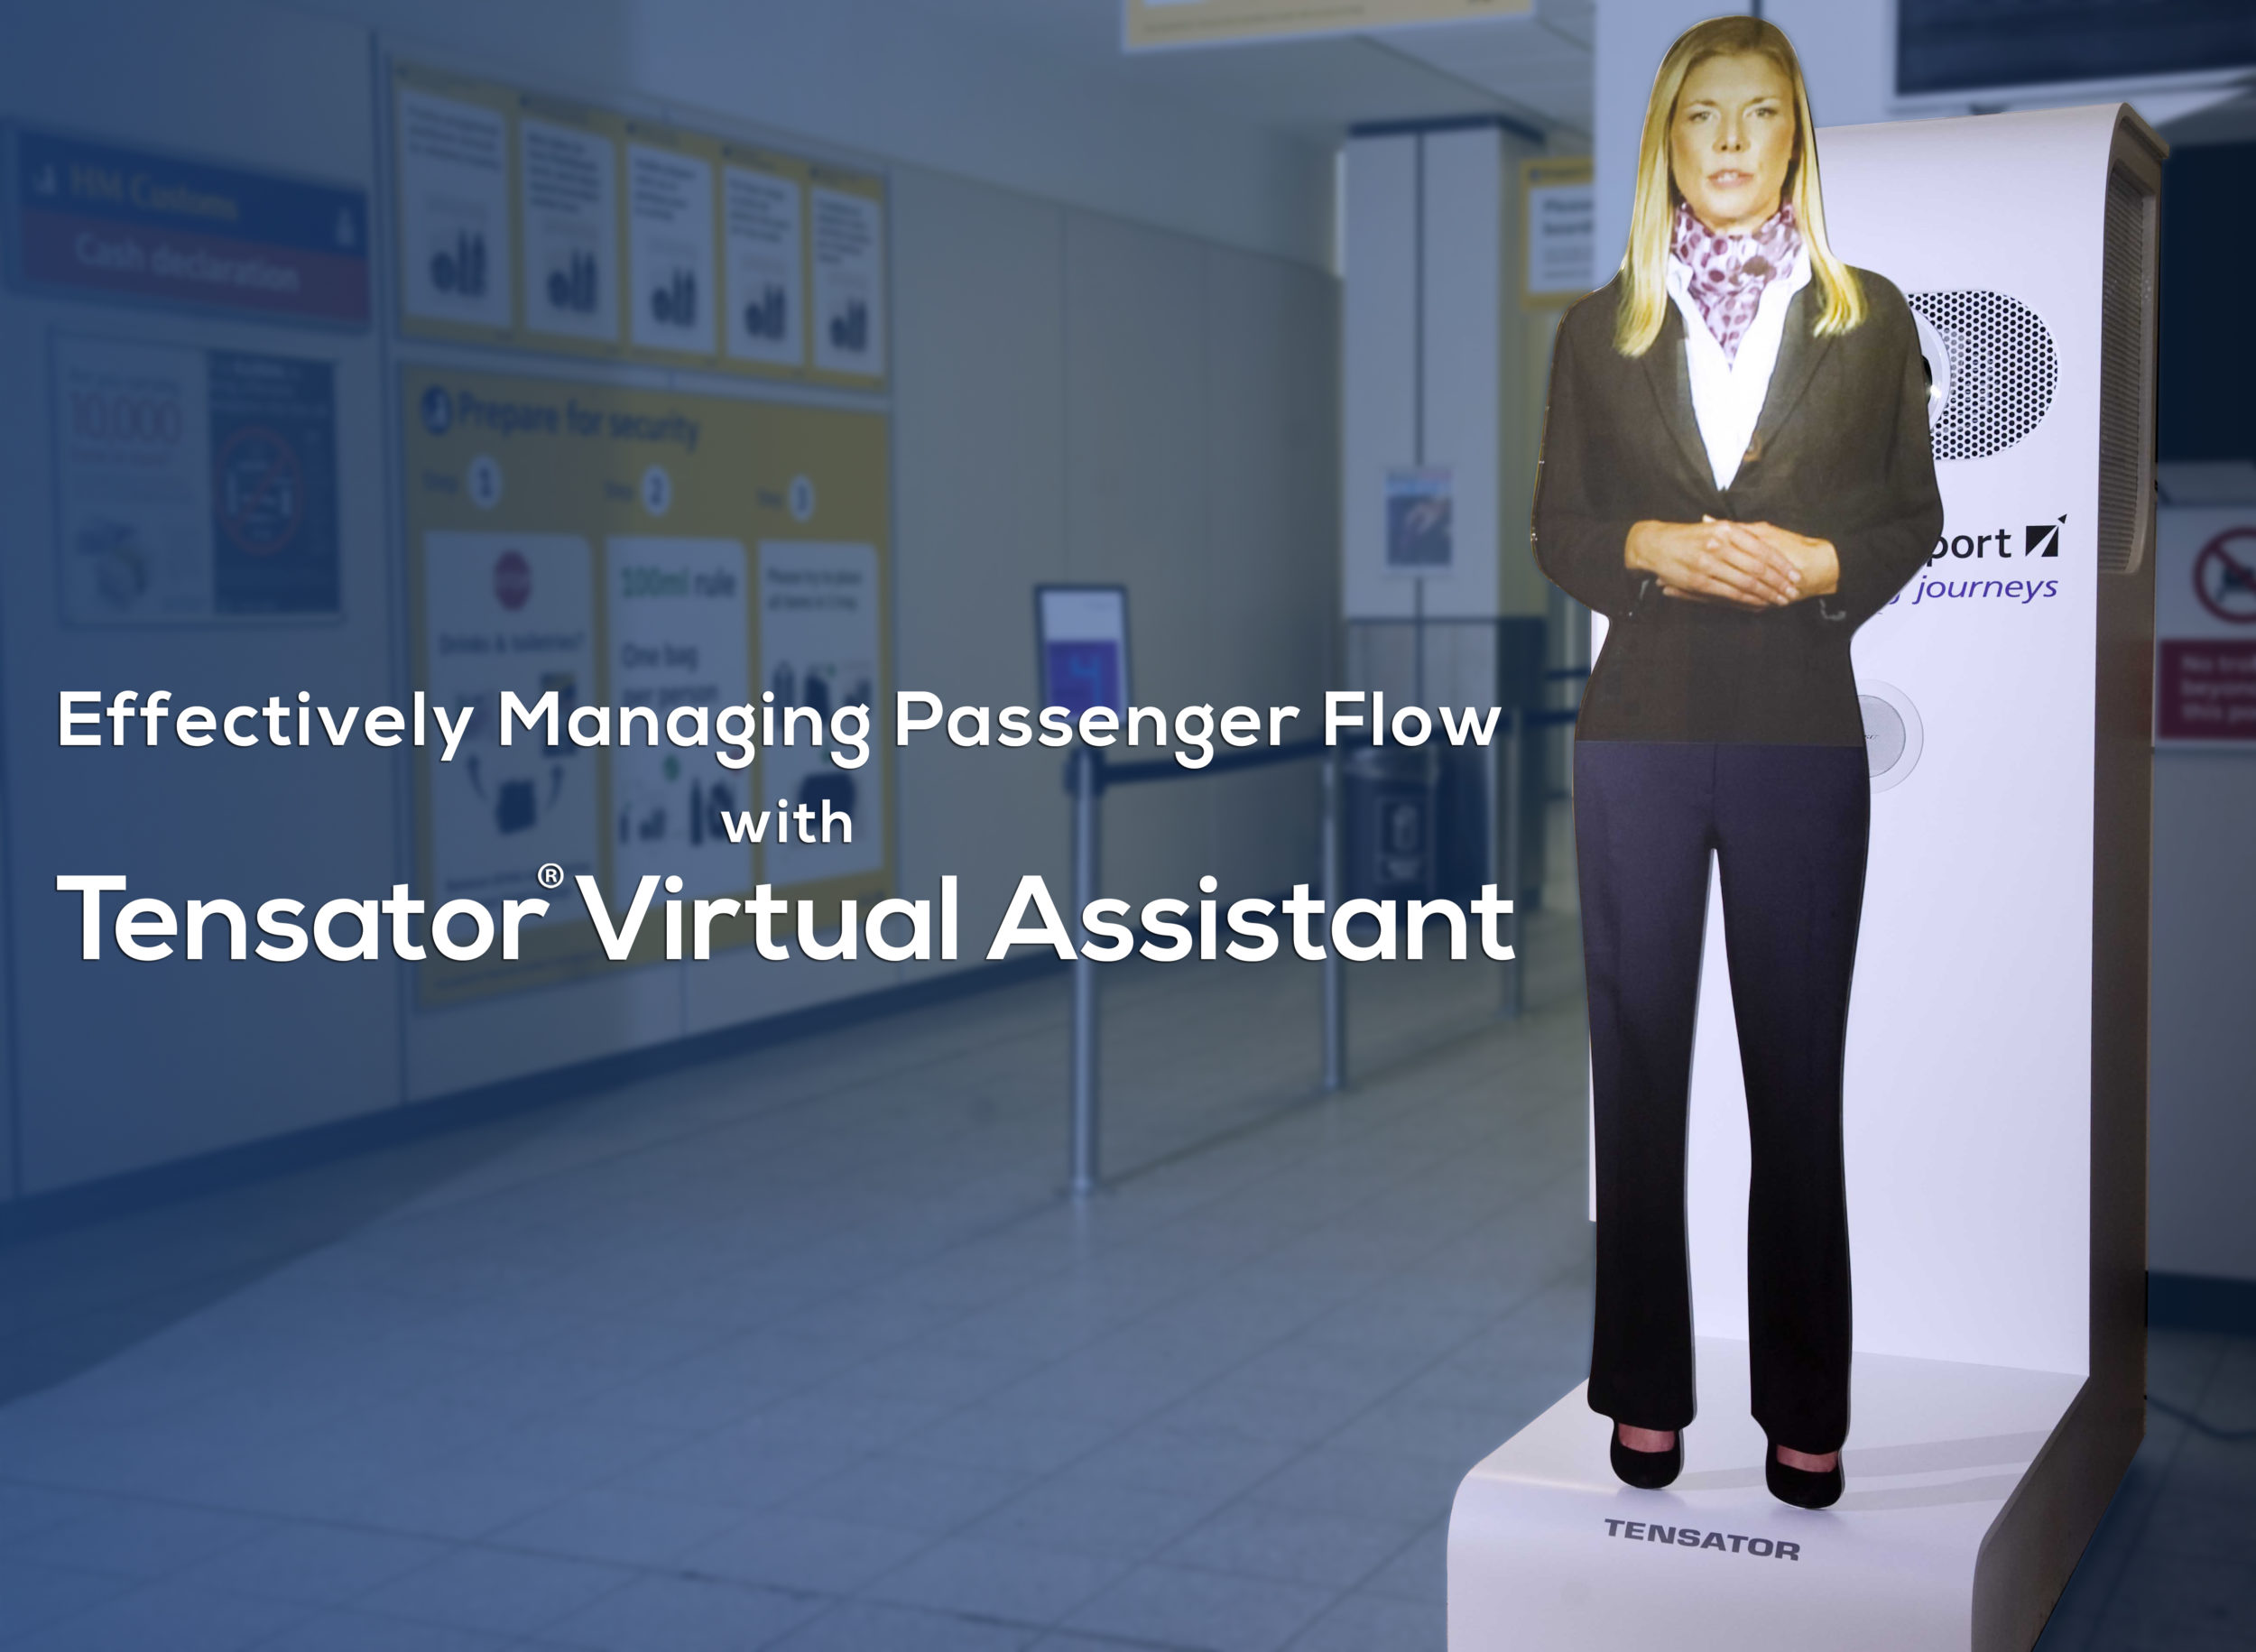 effectively-managing-passenger-flow-with-tensator-virtual